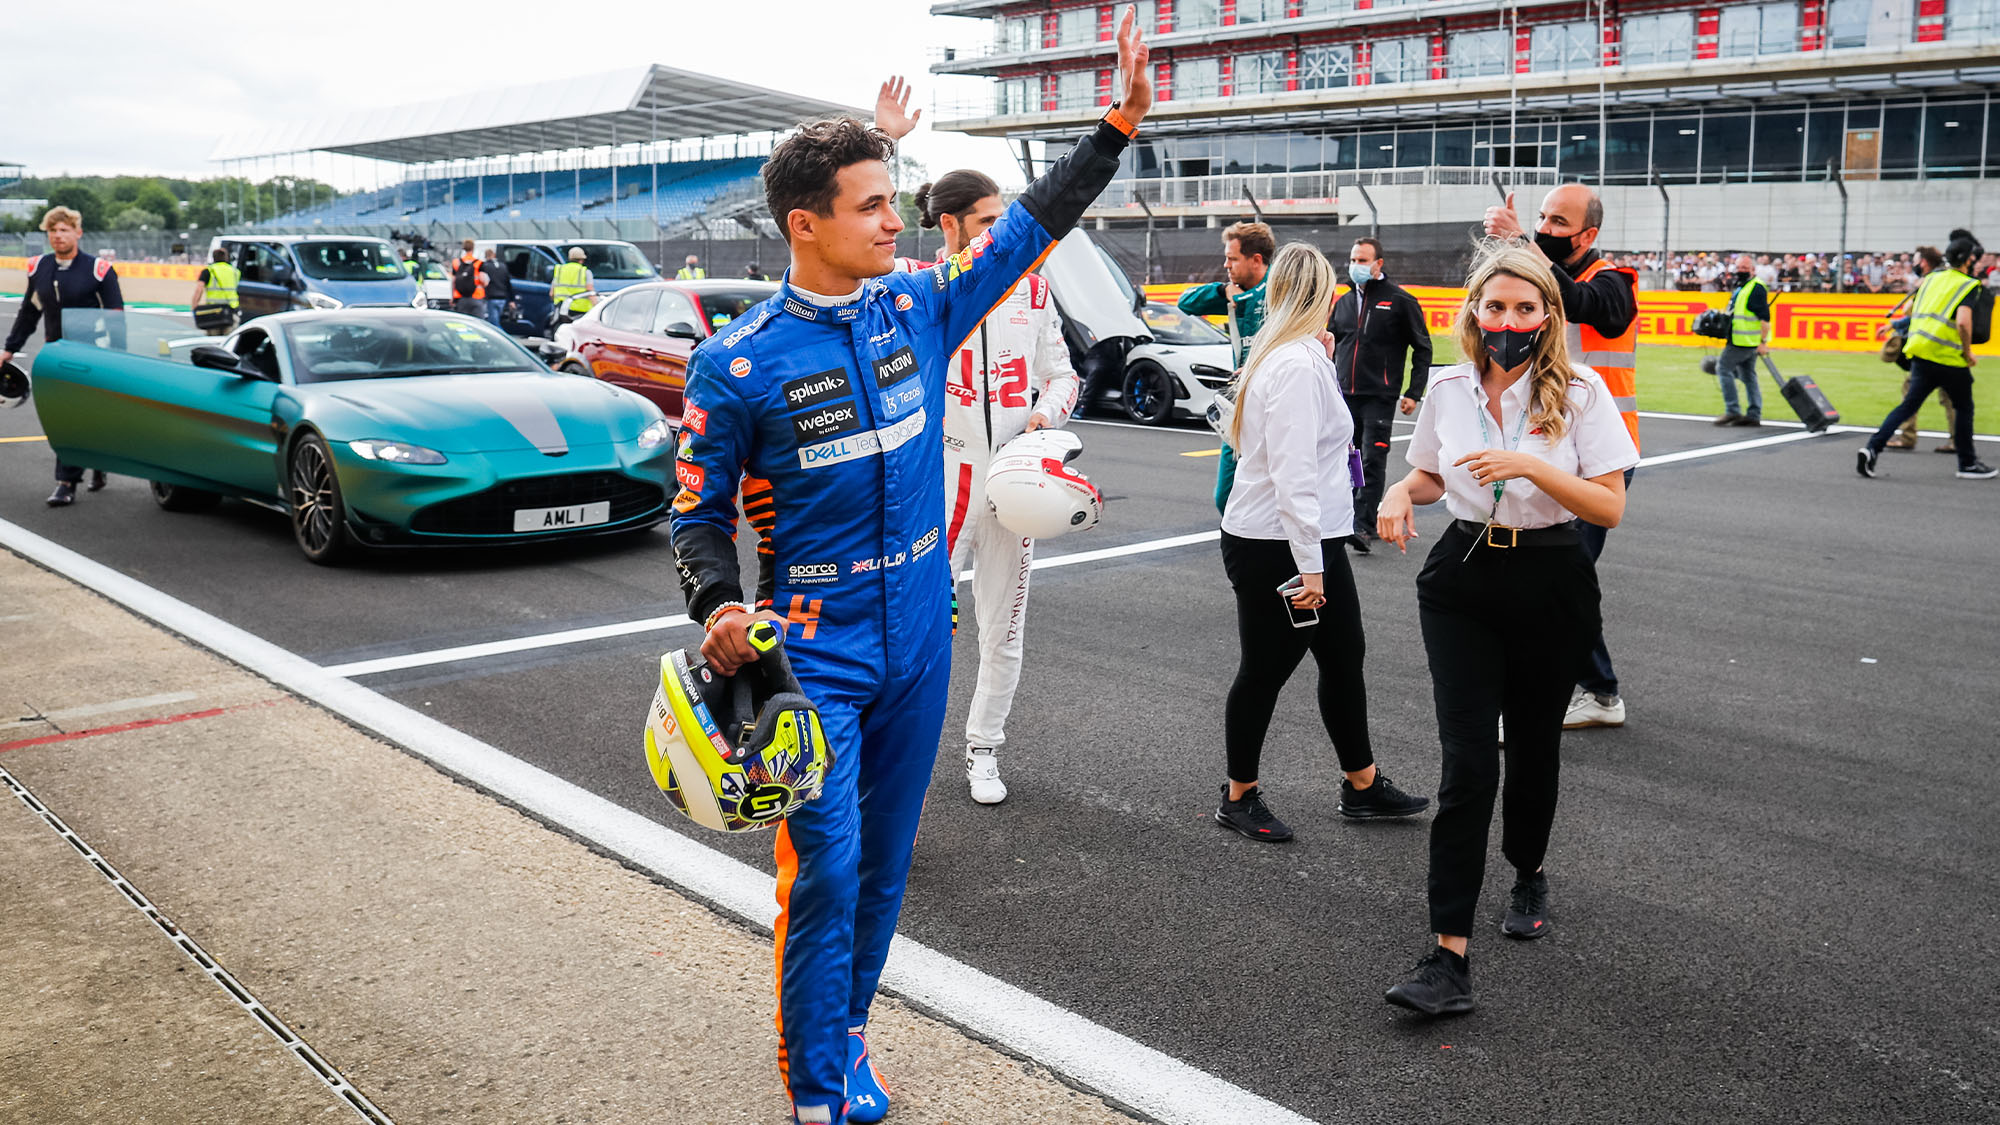 NORRIS Lando (gbr), McLaren MCL35M, portrait during the Formula 1 Pirelli British Grand Prix 2021, 10th round of the 2021 FIA Formula One World Championship from July 16 to 18, 2021 on the Silverstone Circuit, in Silverstone, United Kingdom - Photo Antonin Vincent / DPPI